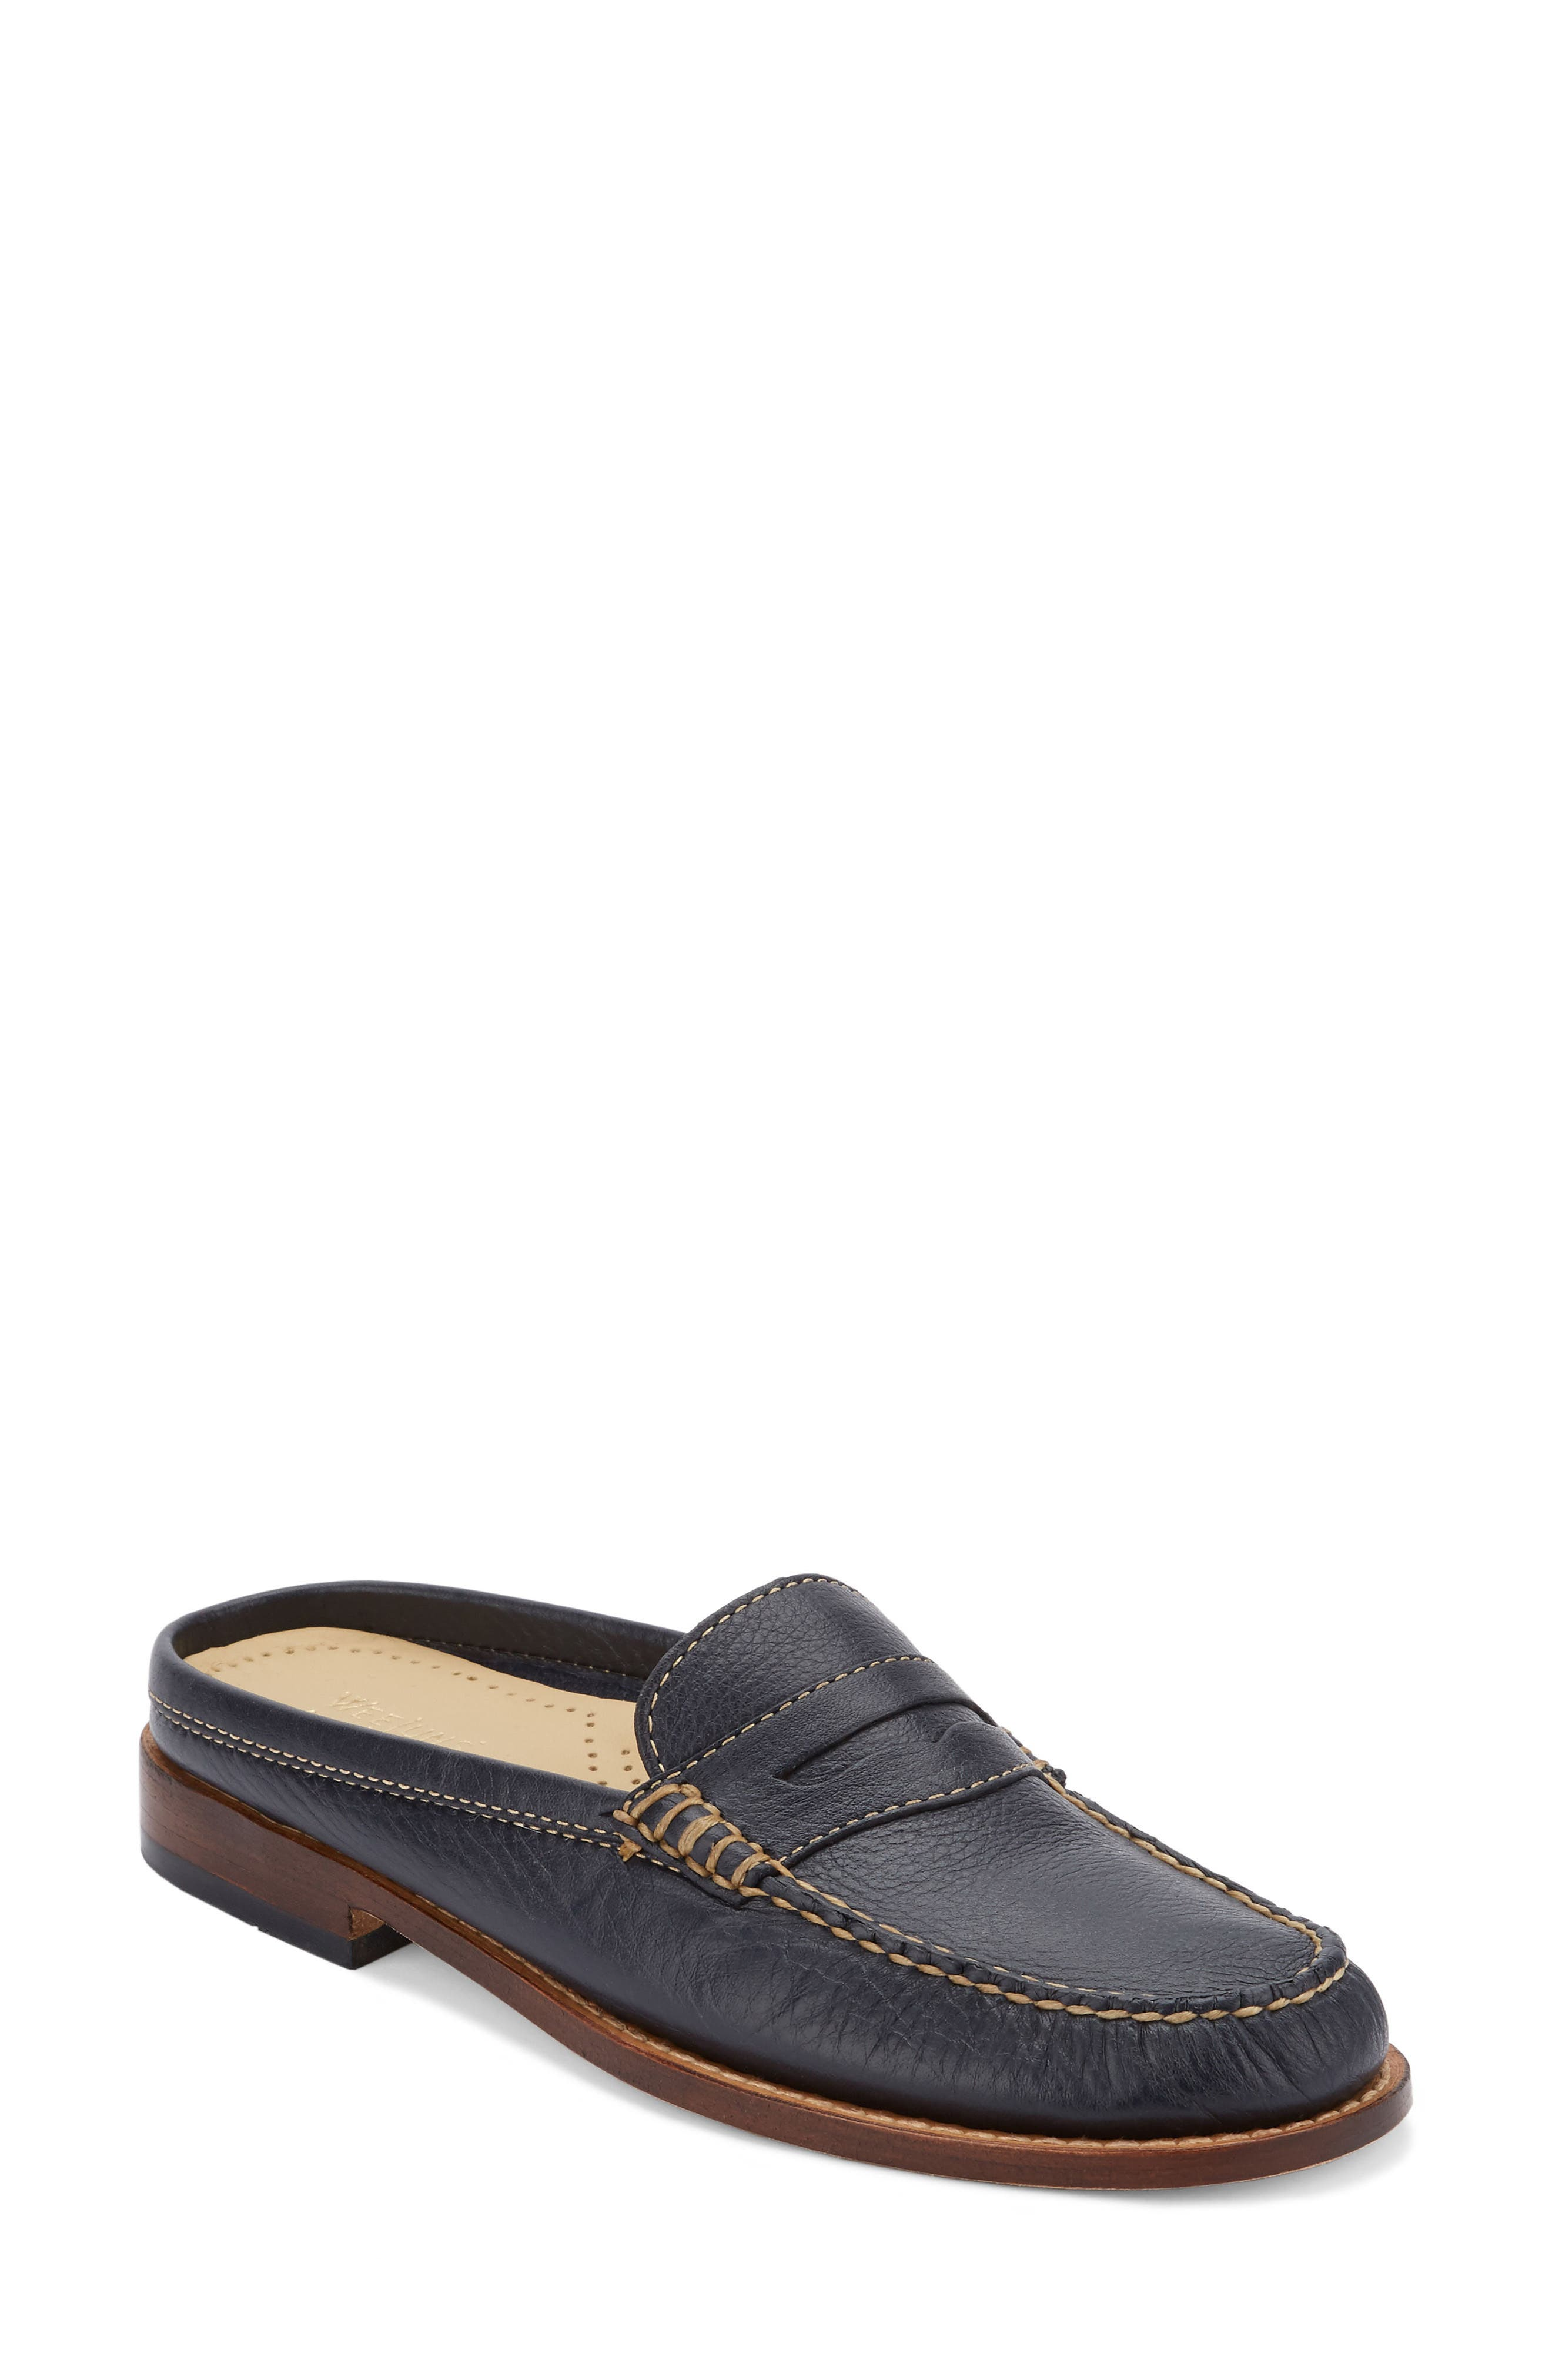 Wynn Loafer Mule,                         Main,                         color, Navy Leather